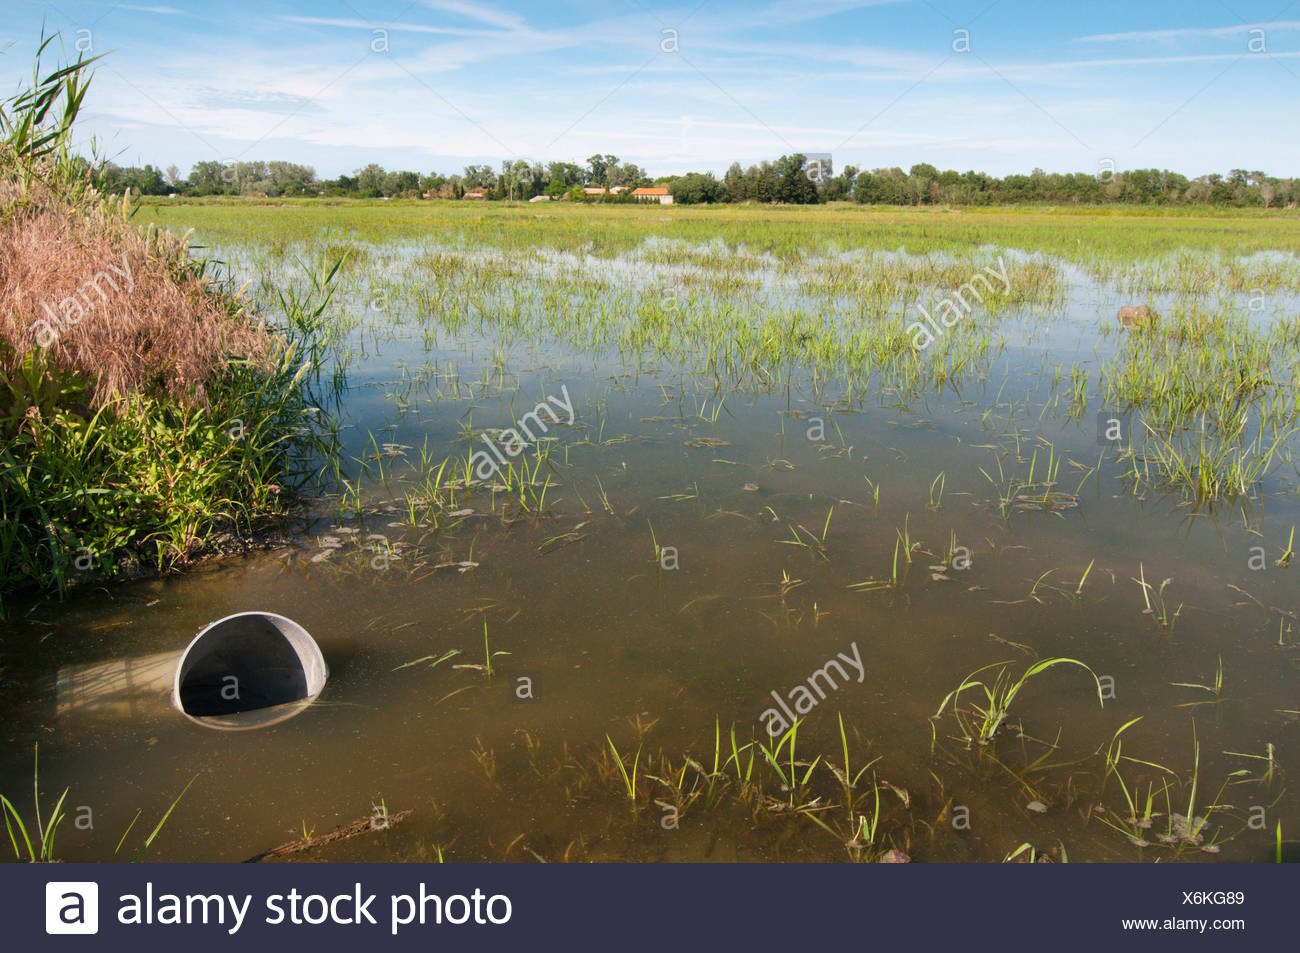 rice cultivation in the Camargue, France, Bouches-du-Rhne, Provence-Alpes-Cote d'Azur, Camargue - Stock Image